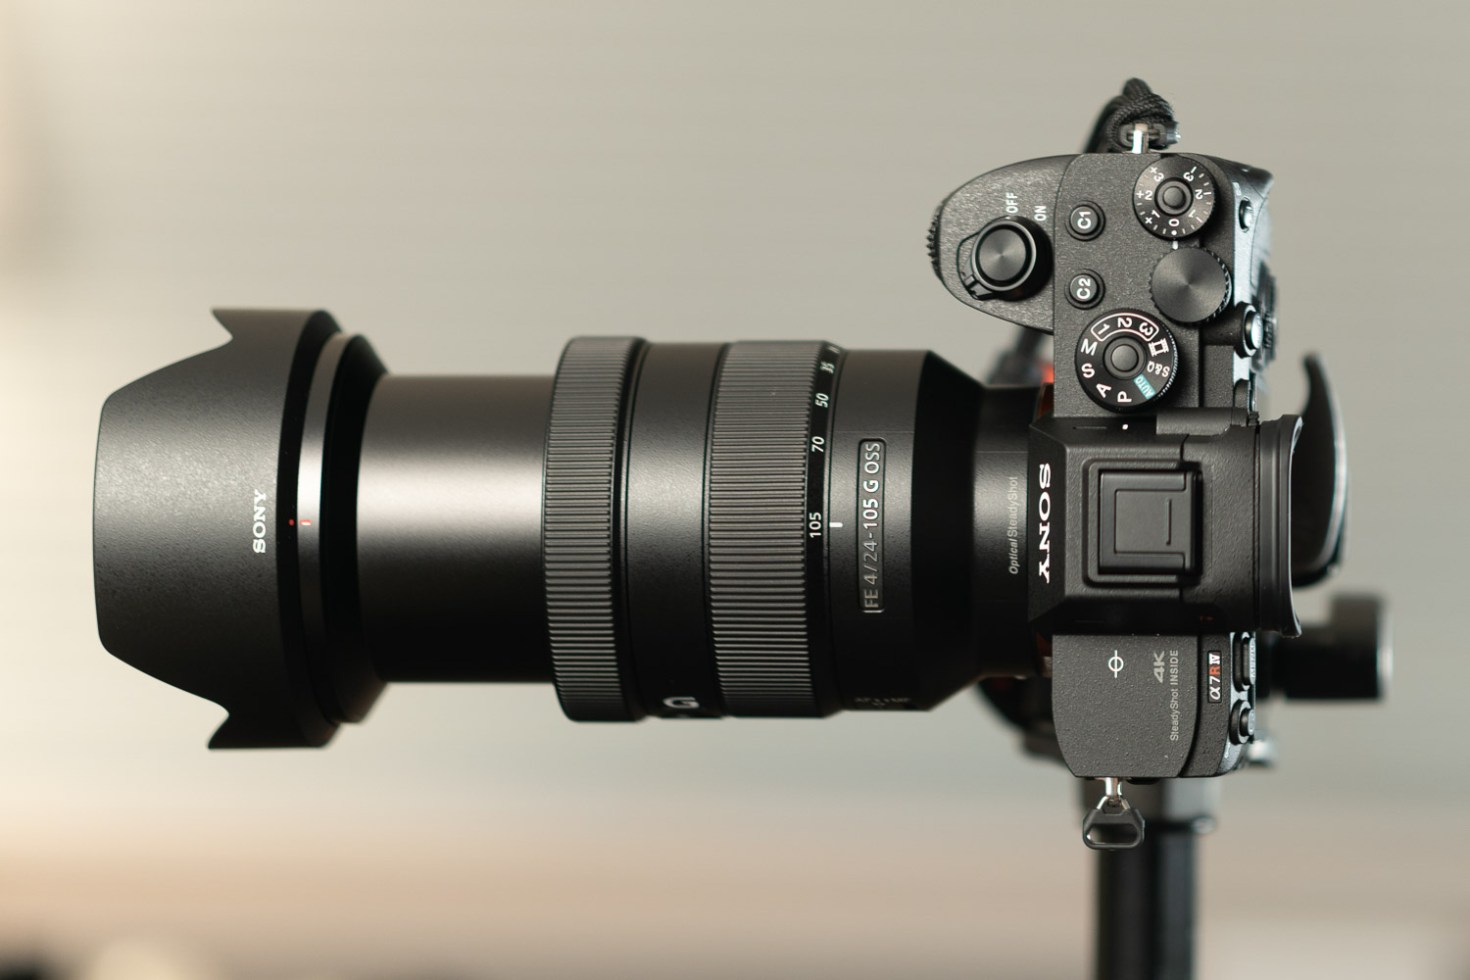 Sony FE 24-105mm F/4 G OSS Lens  @ 105mm - Lab Testing with Sony A7R IV